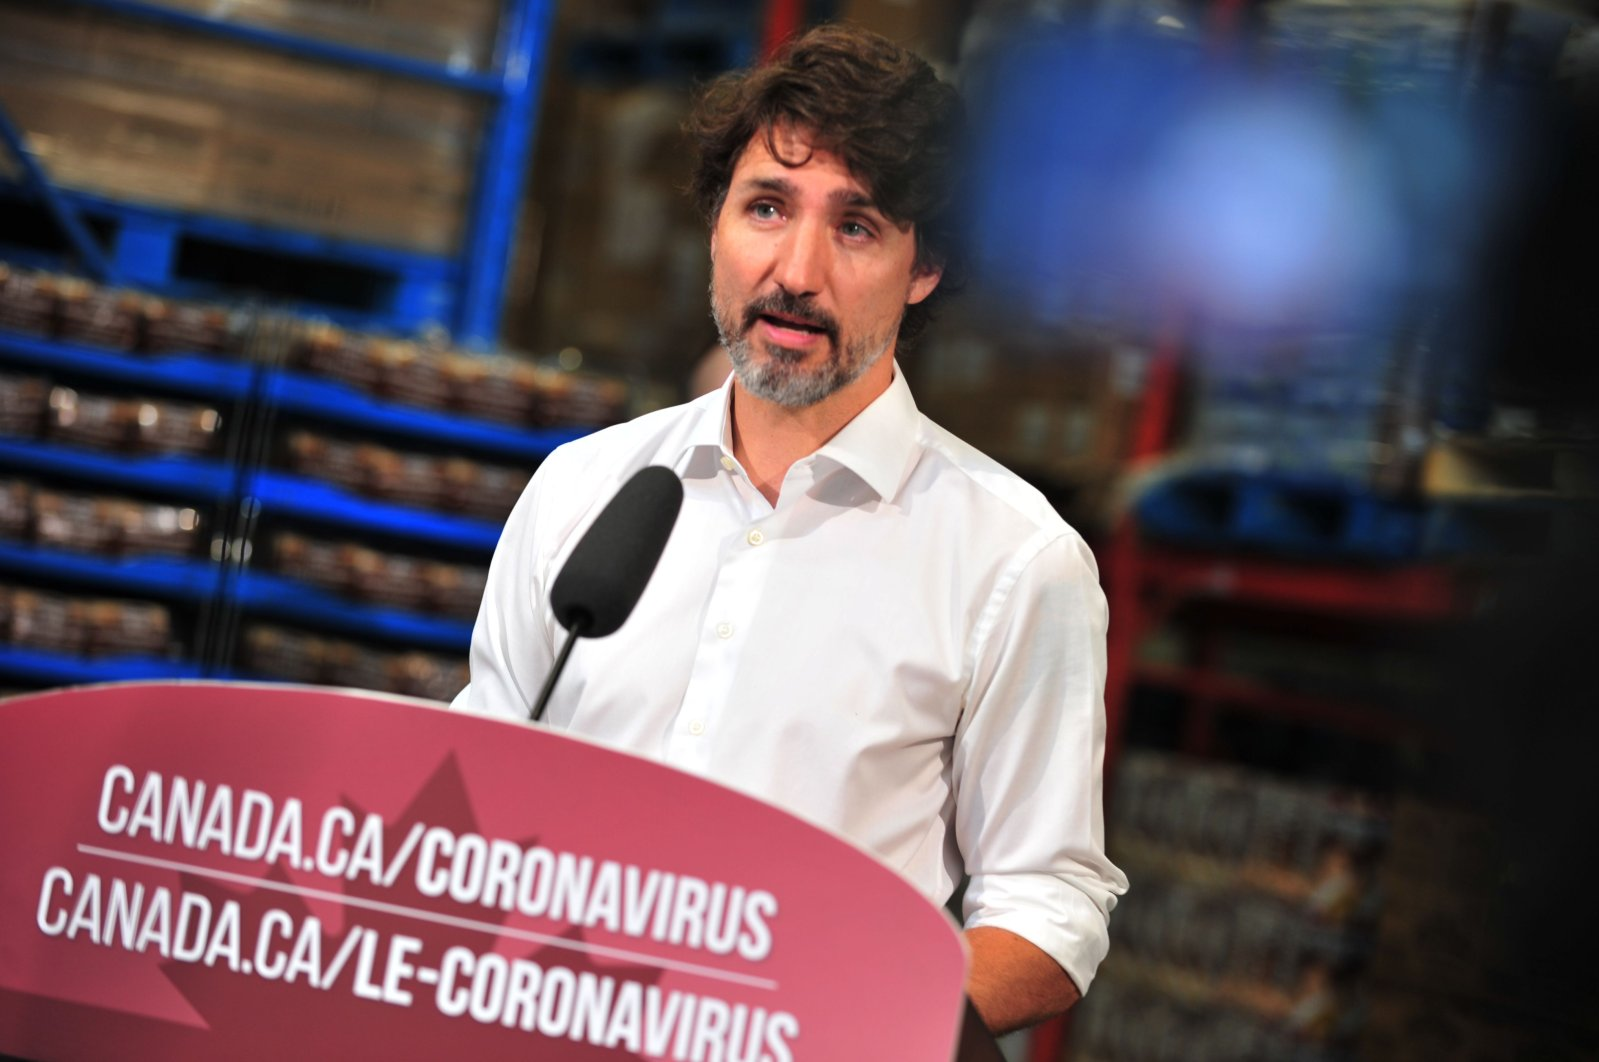 In this file photo taken on July 3, 2020 Canadian Prime Minister Justin Trudeau speaks to the press as he volunteers at the Moisson Outaouais food bank in Gatineau, Quebec, Canada during the coronavirus pandemic. (AFP Photo)